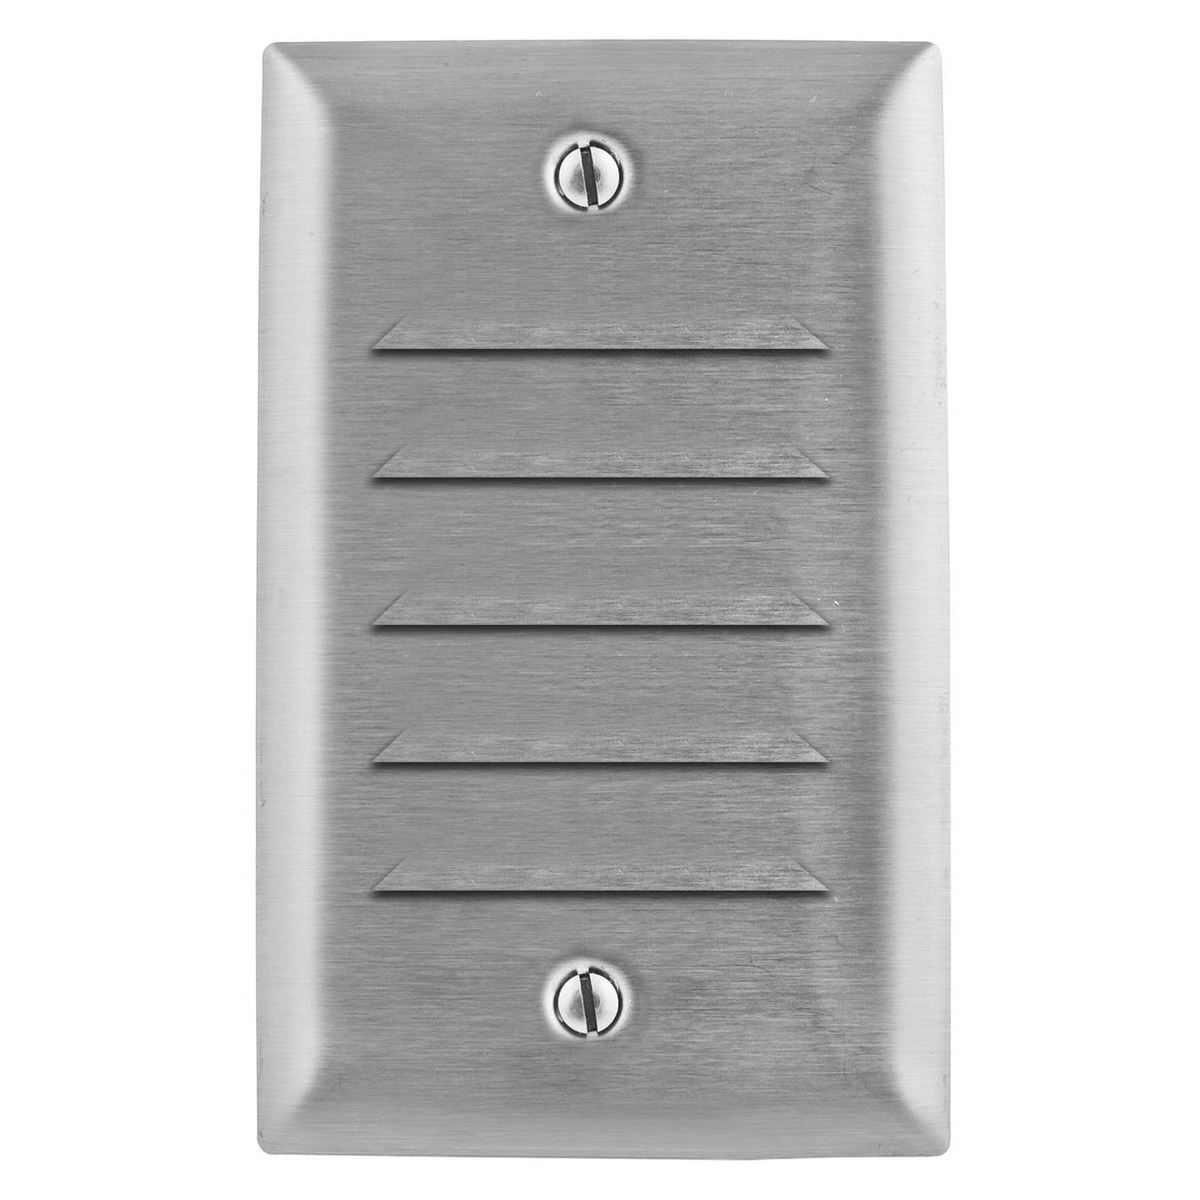 Hubbell SS771 WALLPLATE, 1-G, LOUVER, SS